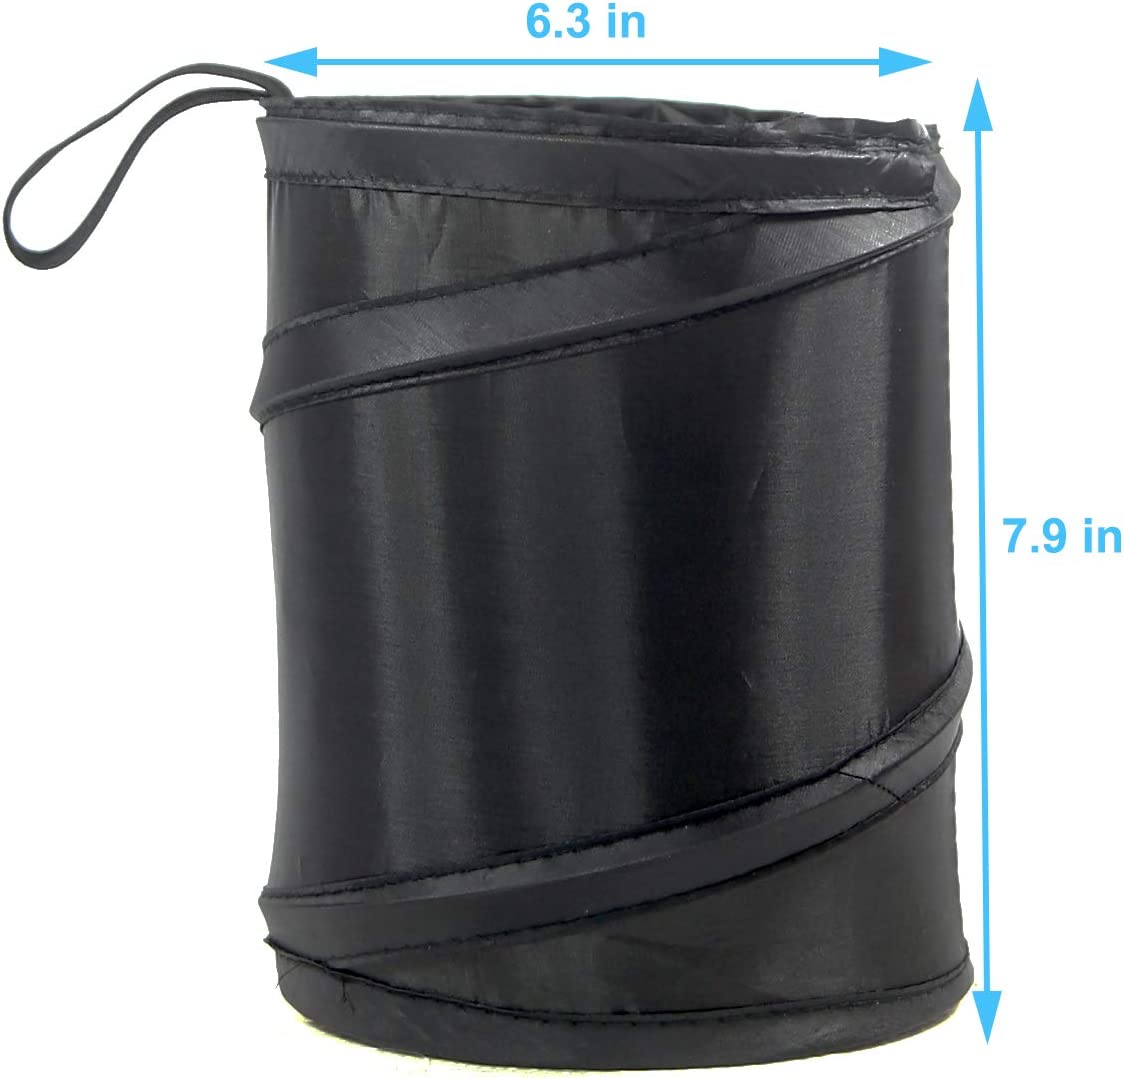 Kitbest Car Trash Can Auto Garbage Bin Collapsible Pop Up Trash Garbage Bag for Car Console Trash Container 2 Pack Automobile Waste Basket Small Portable Vehicle Trashcan